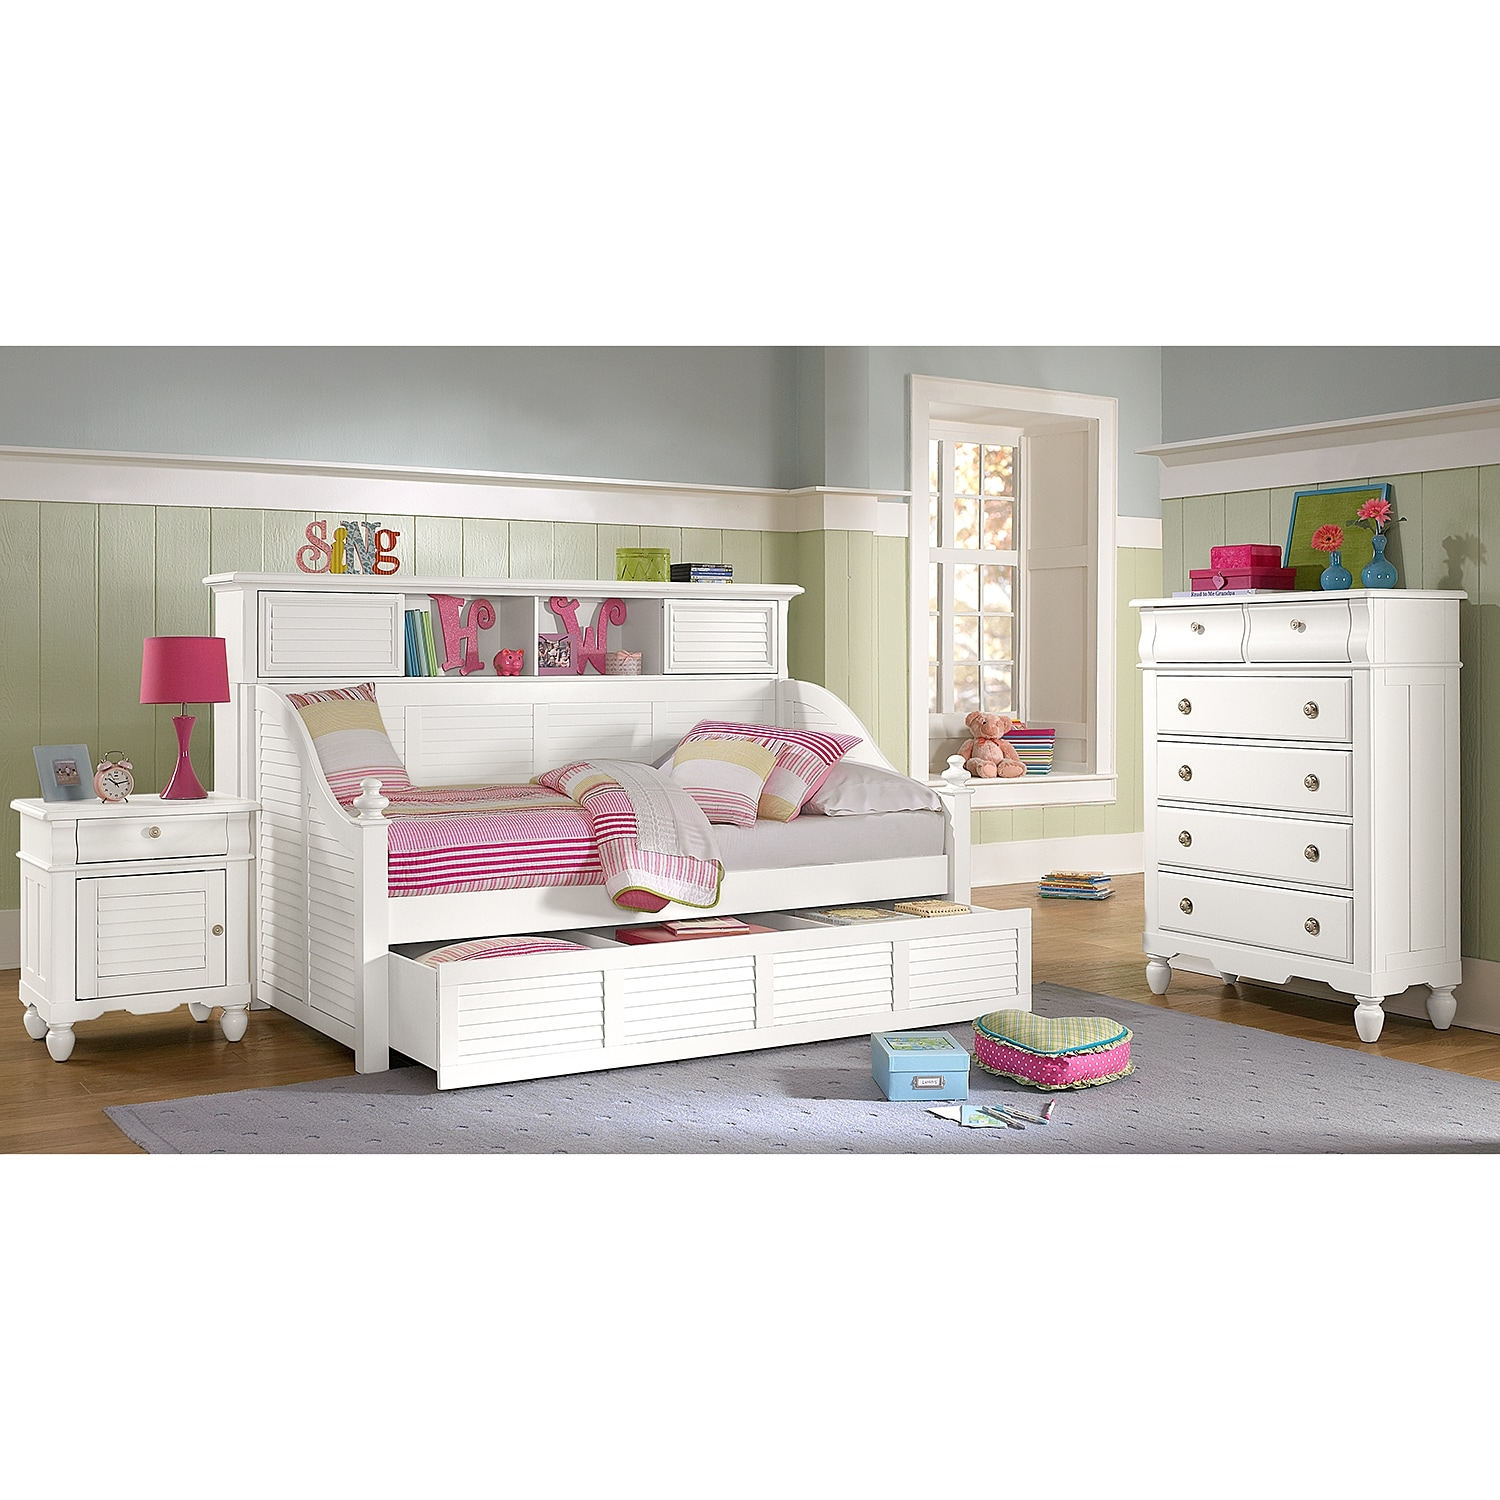 design products daybed signature number item bed unit with full bookcase trundle barchan storage by ashley